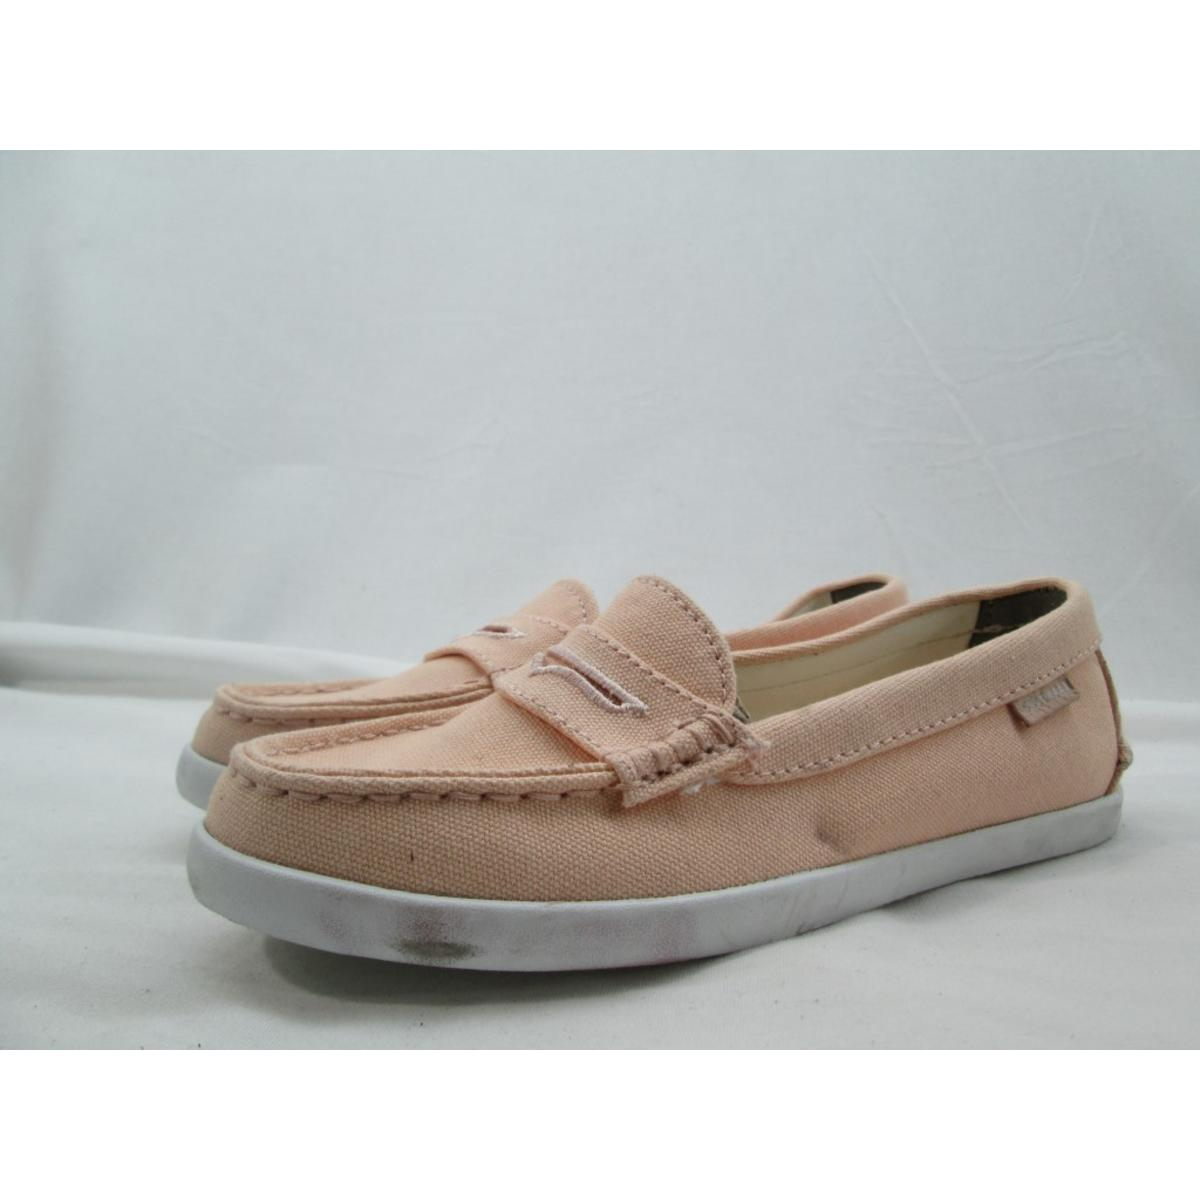 32af4abf971 Details about Cole Haan Women s Canyon Rose White Canvas Pinch Weekender  Loafers 6M